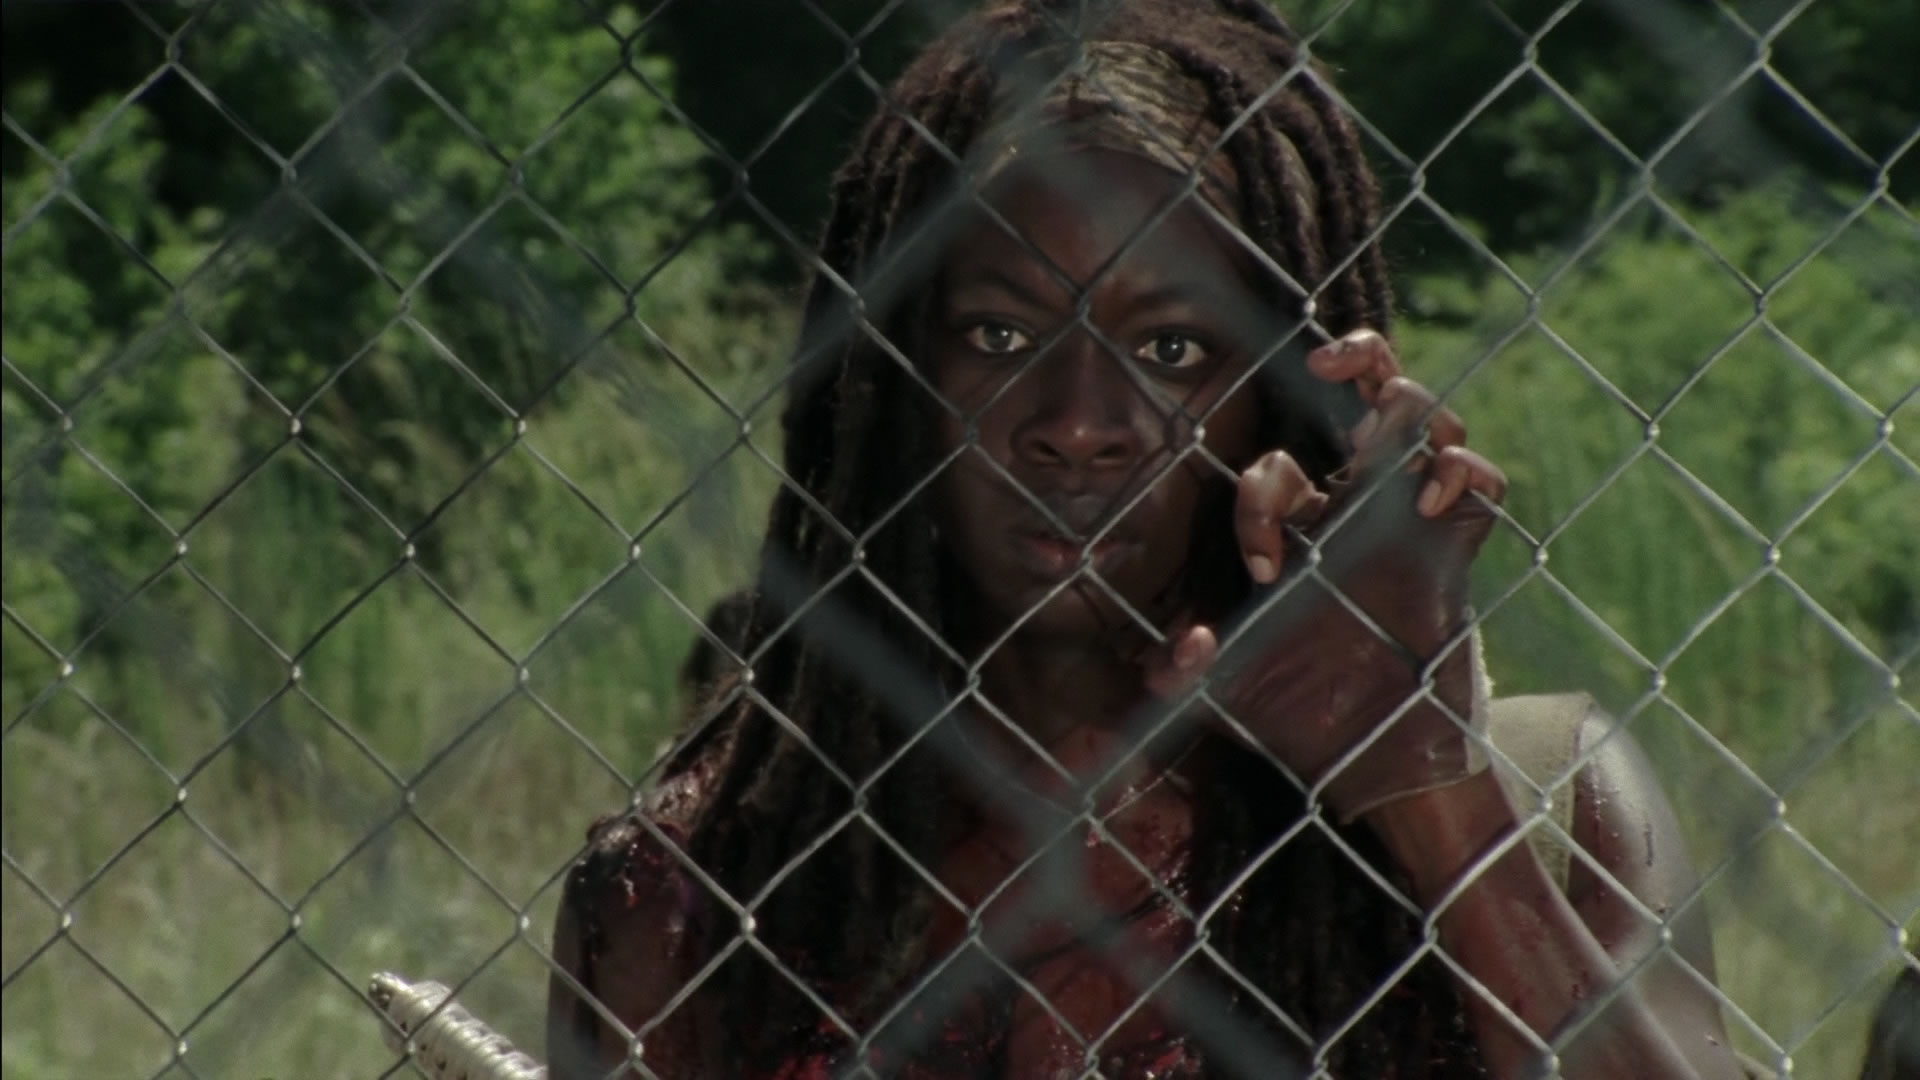 'The Walking Dead' Season 3 Episode 6 Captures